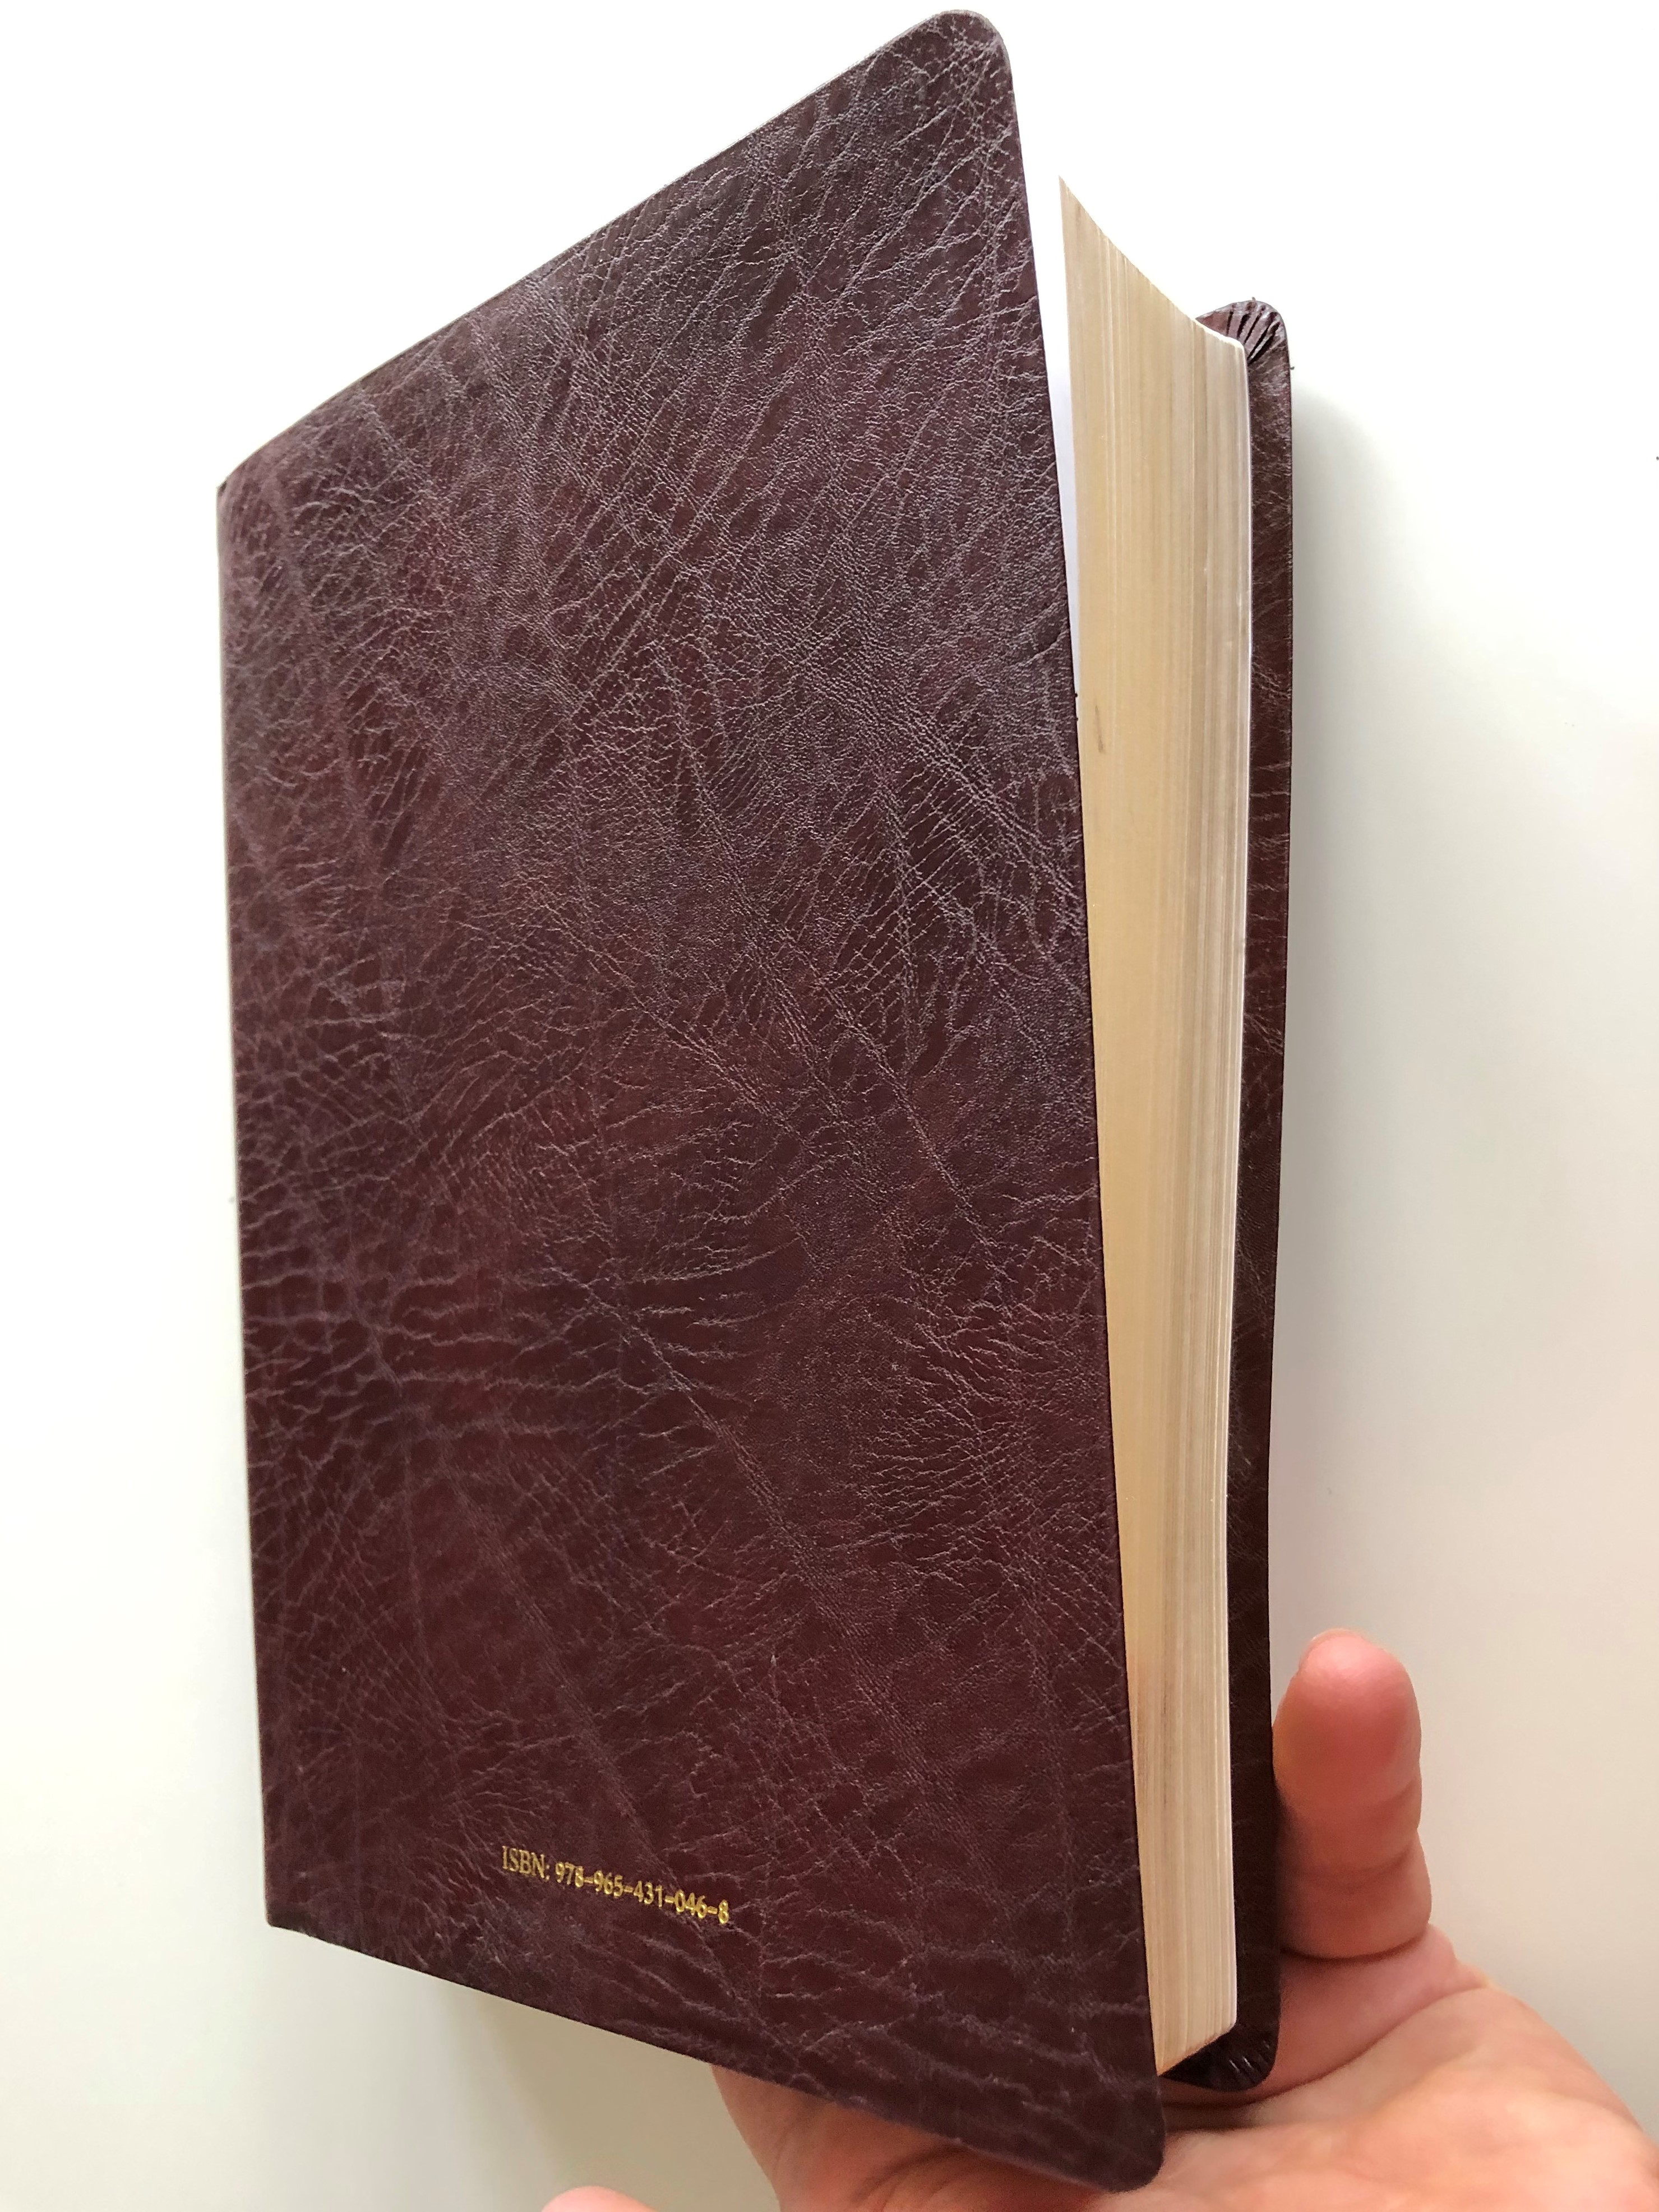 holy-bible-in-hebrew-and-arabic-18.jpg